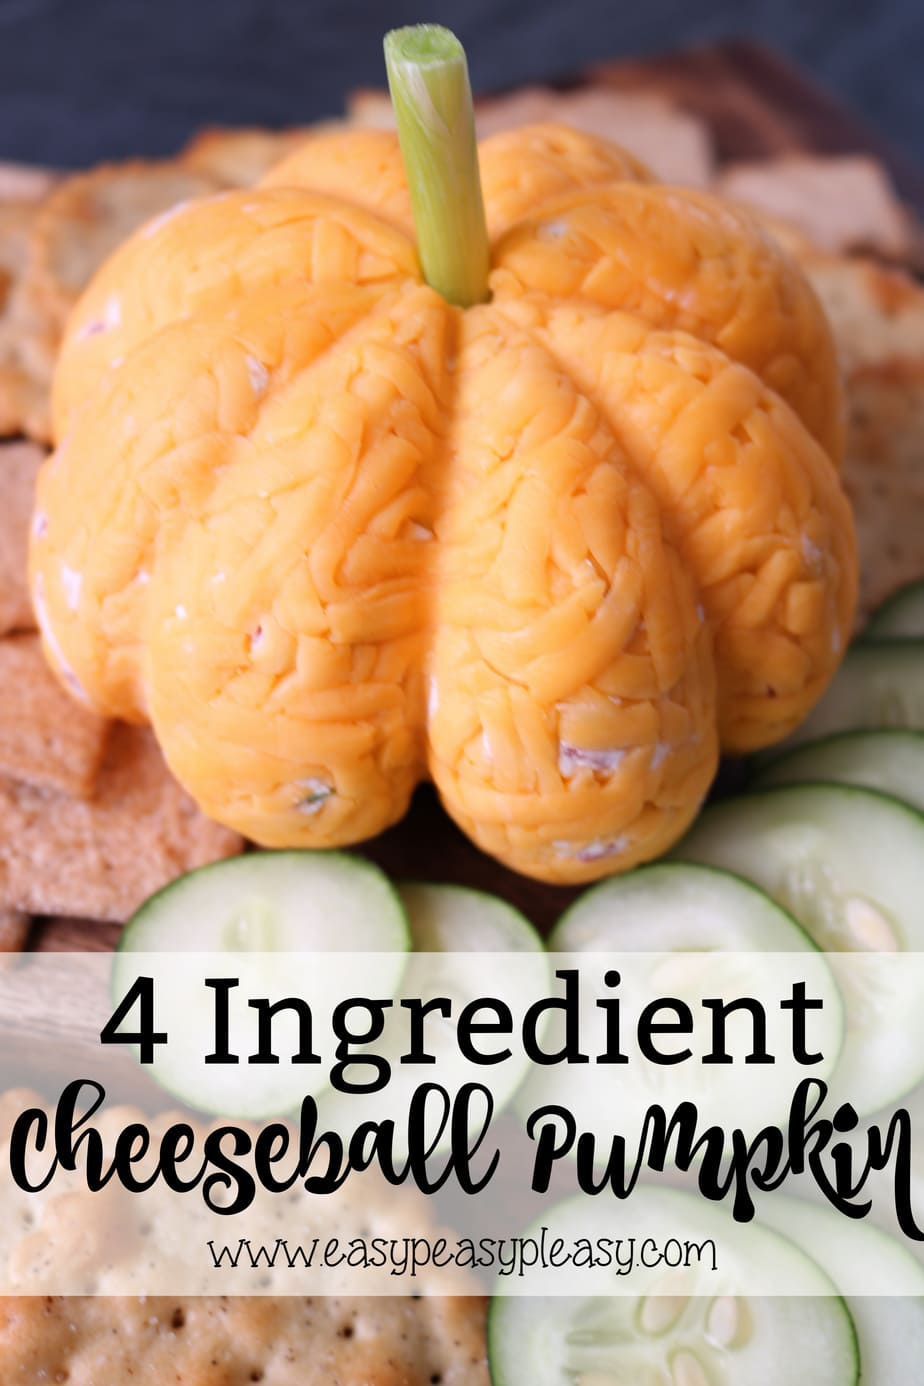 Cheeseball Pumpkin using only 4 Ingredients perfect for Halloween and Thanksgiving. #cheeseball #cheesballpumpkin #halloweencheeseball #thanksgivingcheeseball